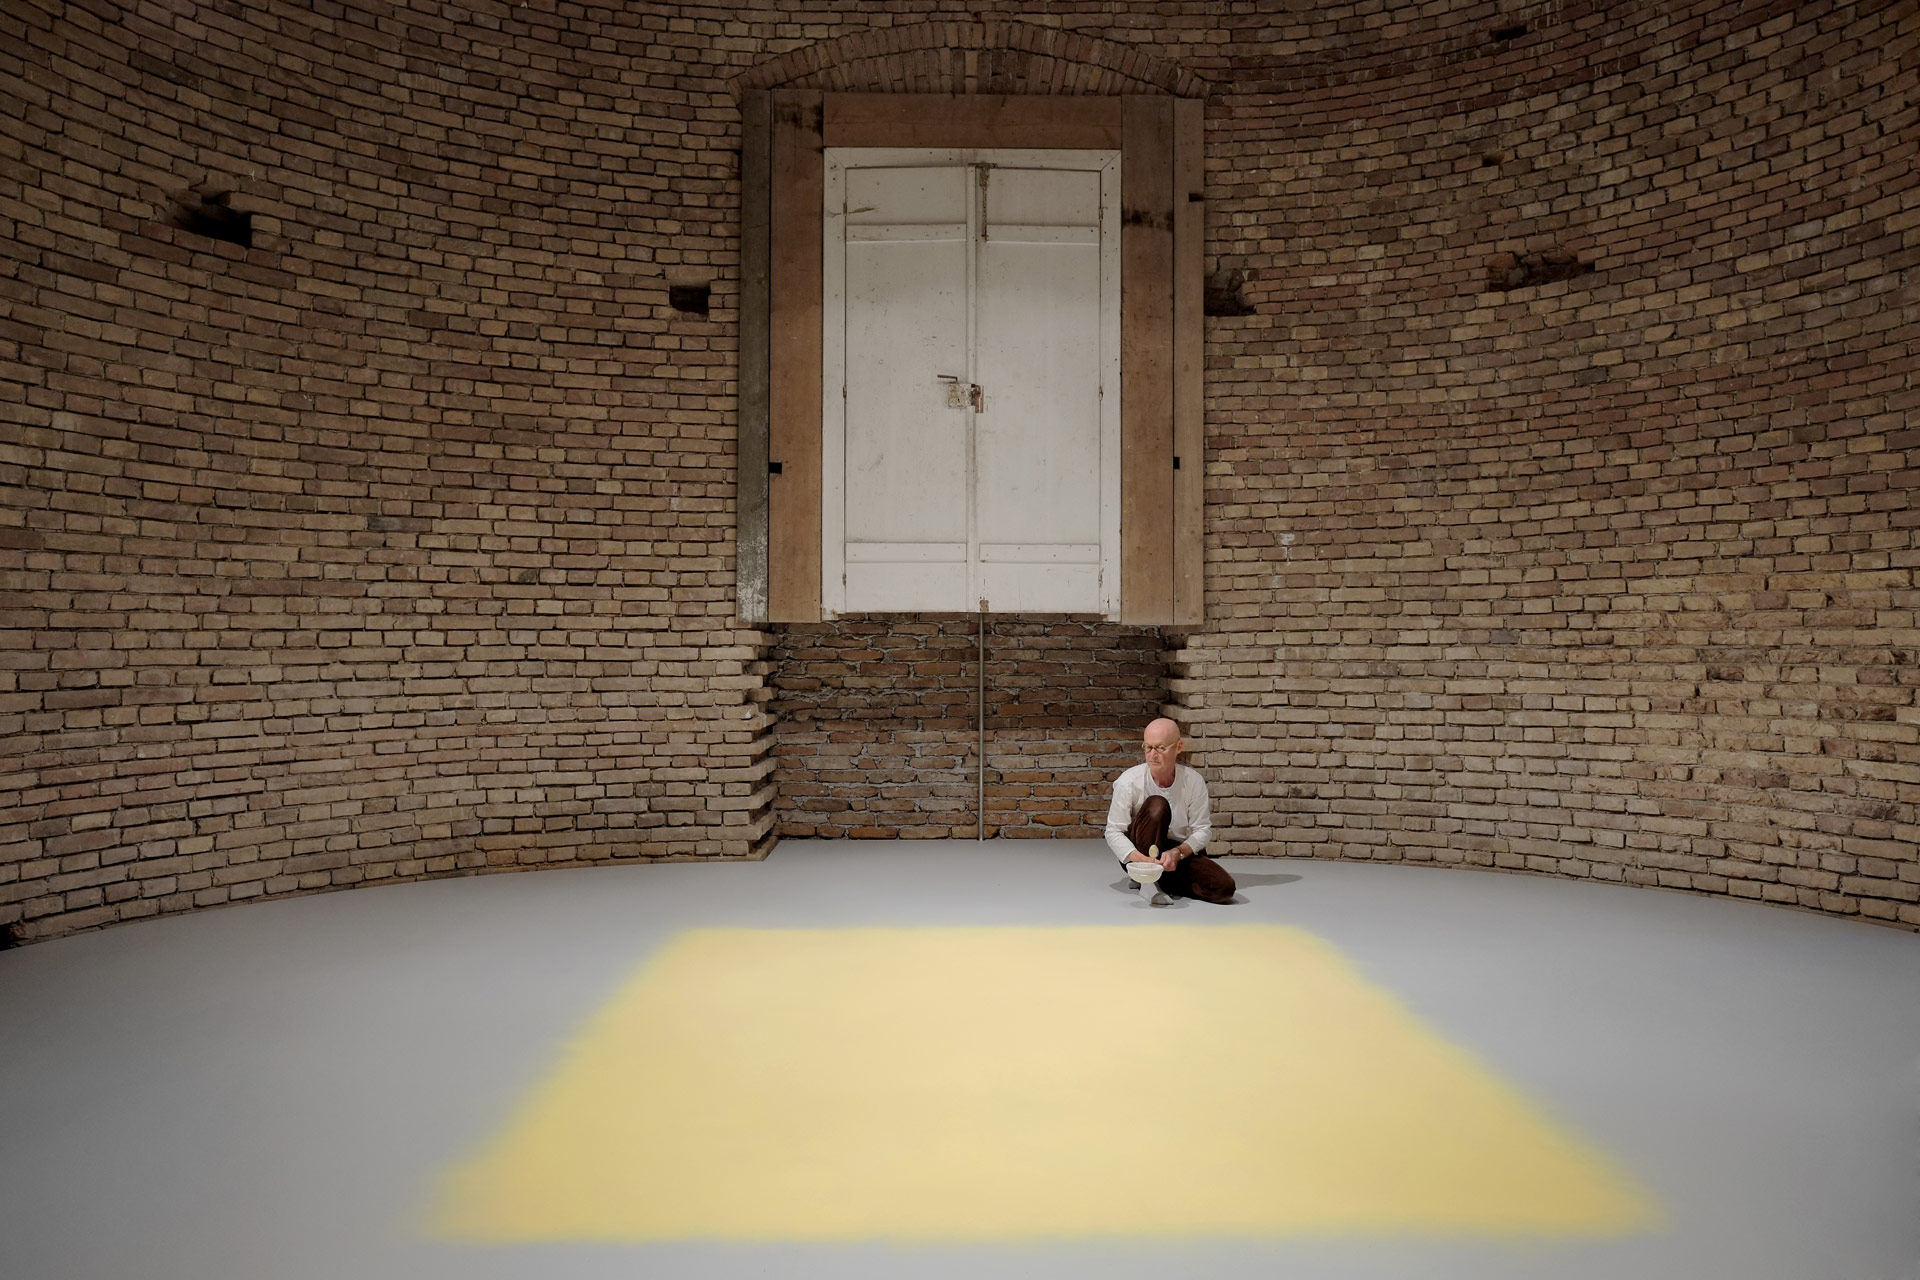 The artist Wolfgang Laib sits in front of his artwork in the unfinished rooms of Herrenchiemsee Castle.